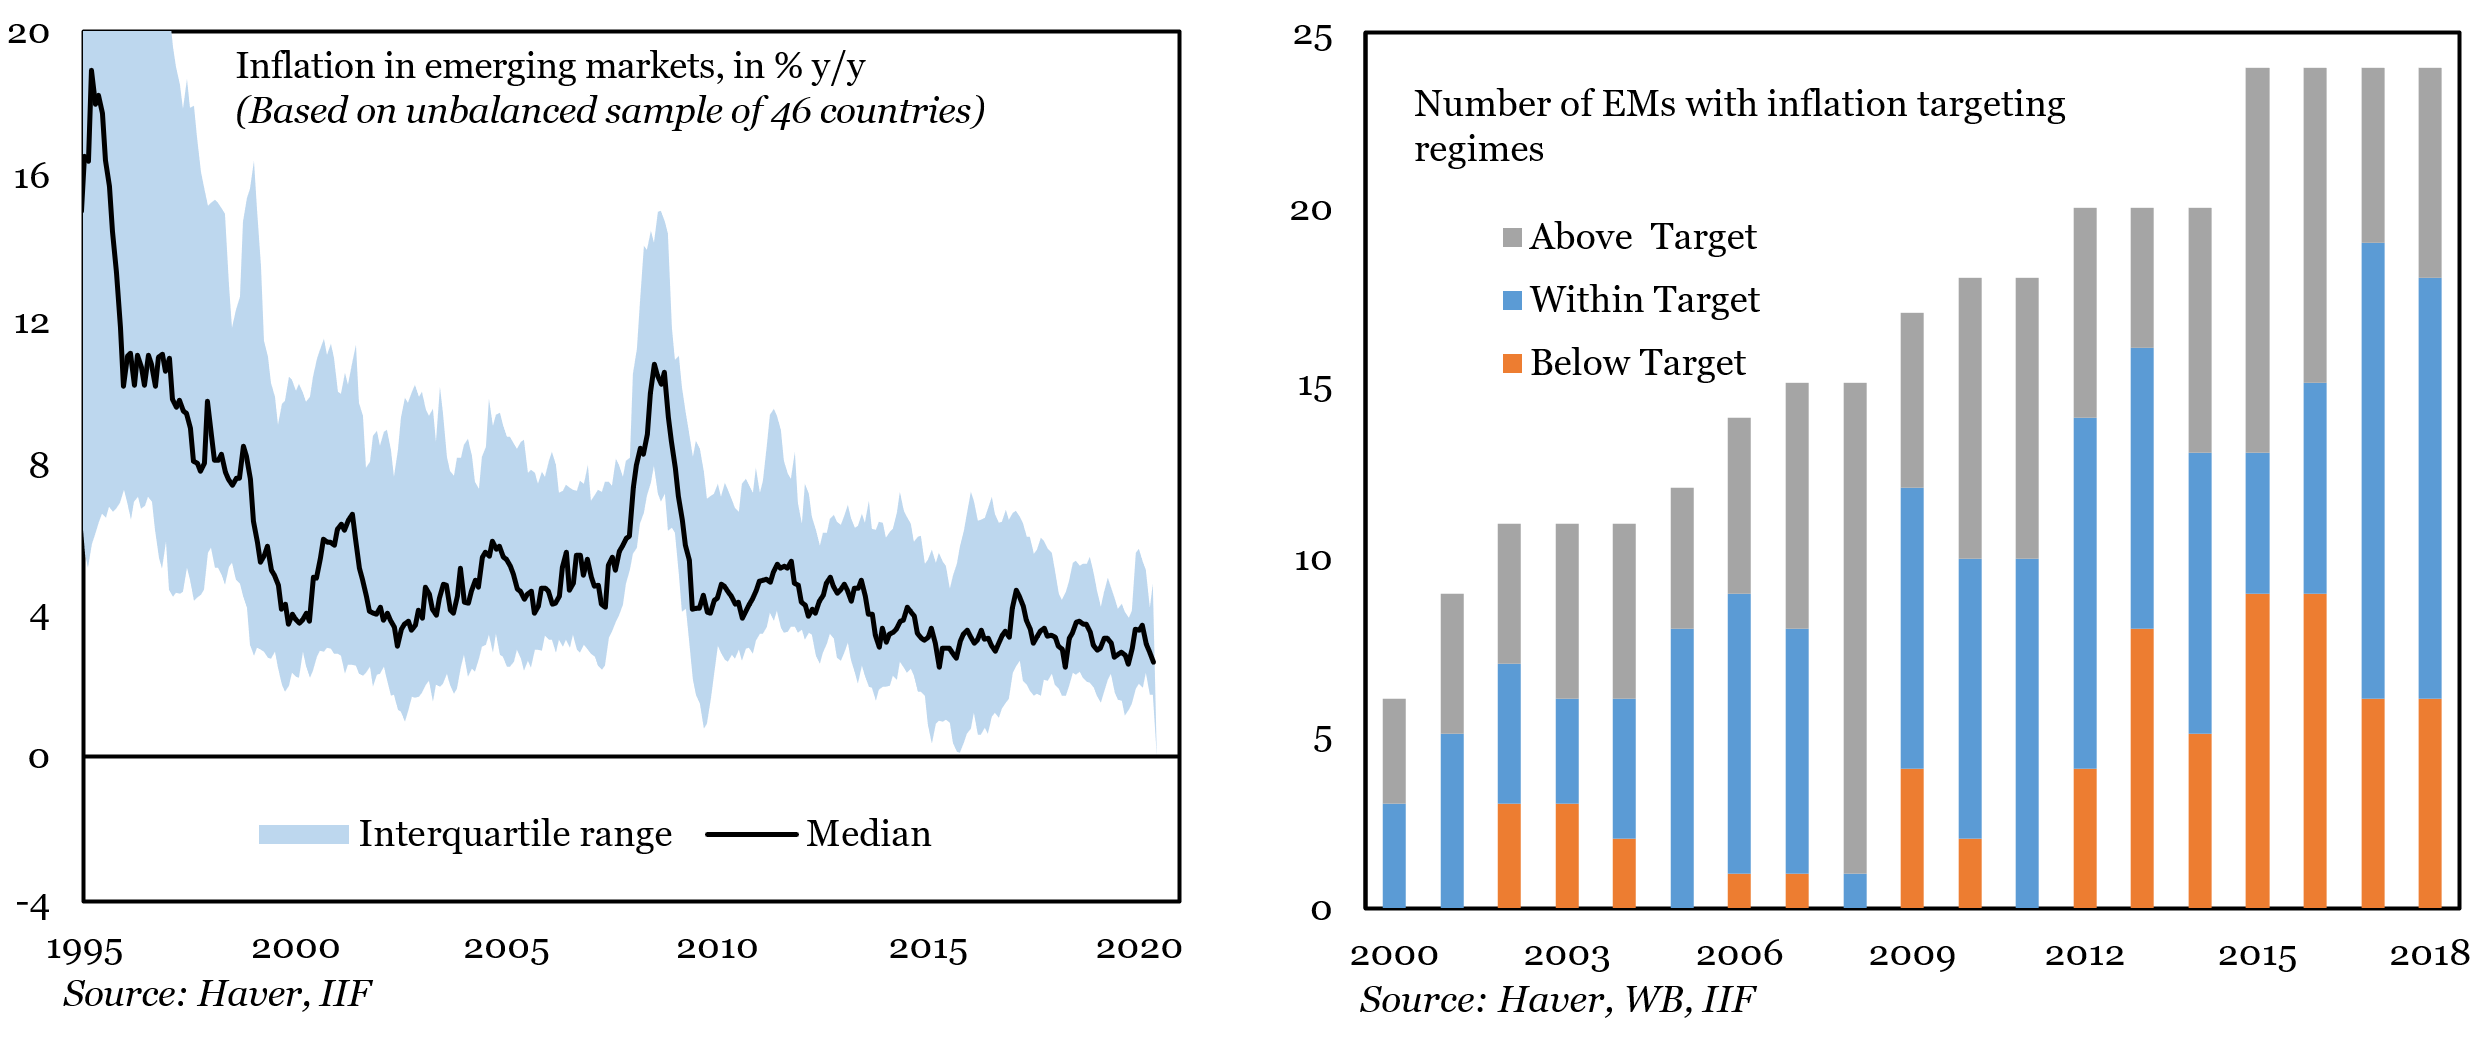 Credible emerging market central banks could embrace quantitative easing to fight COVID-19 5